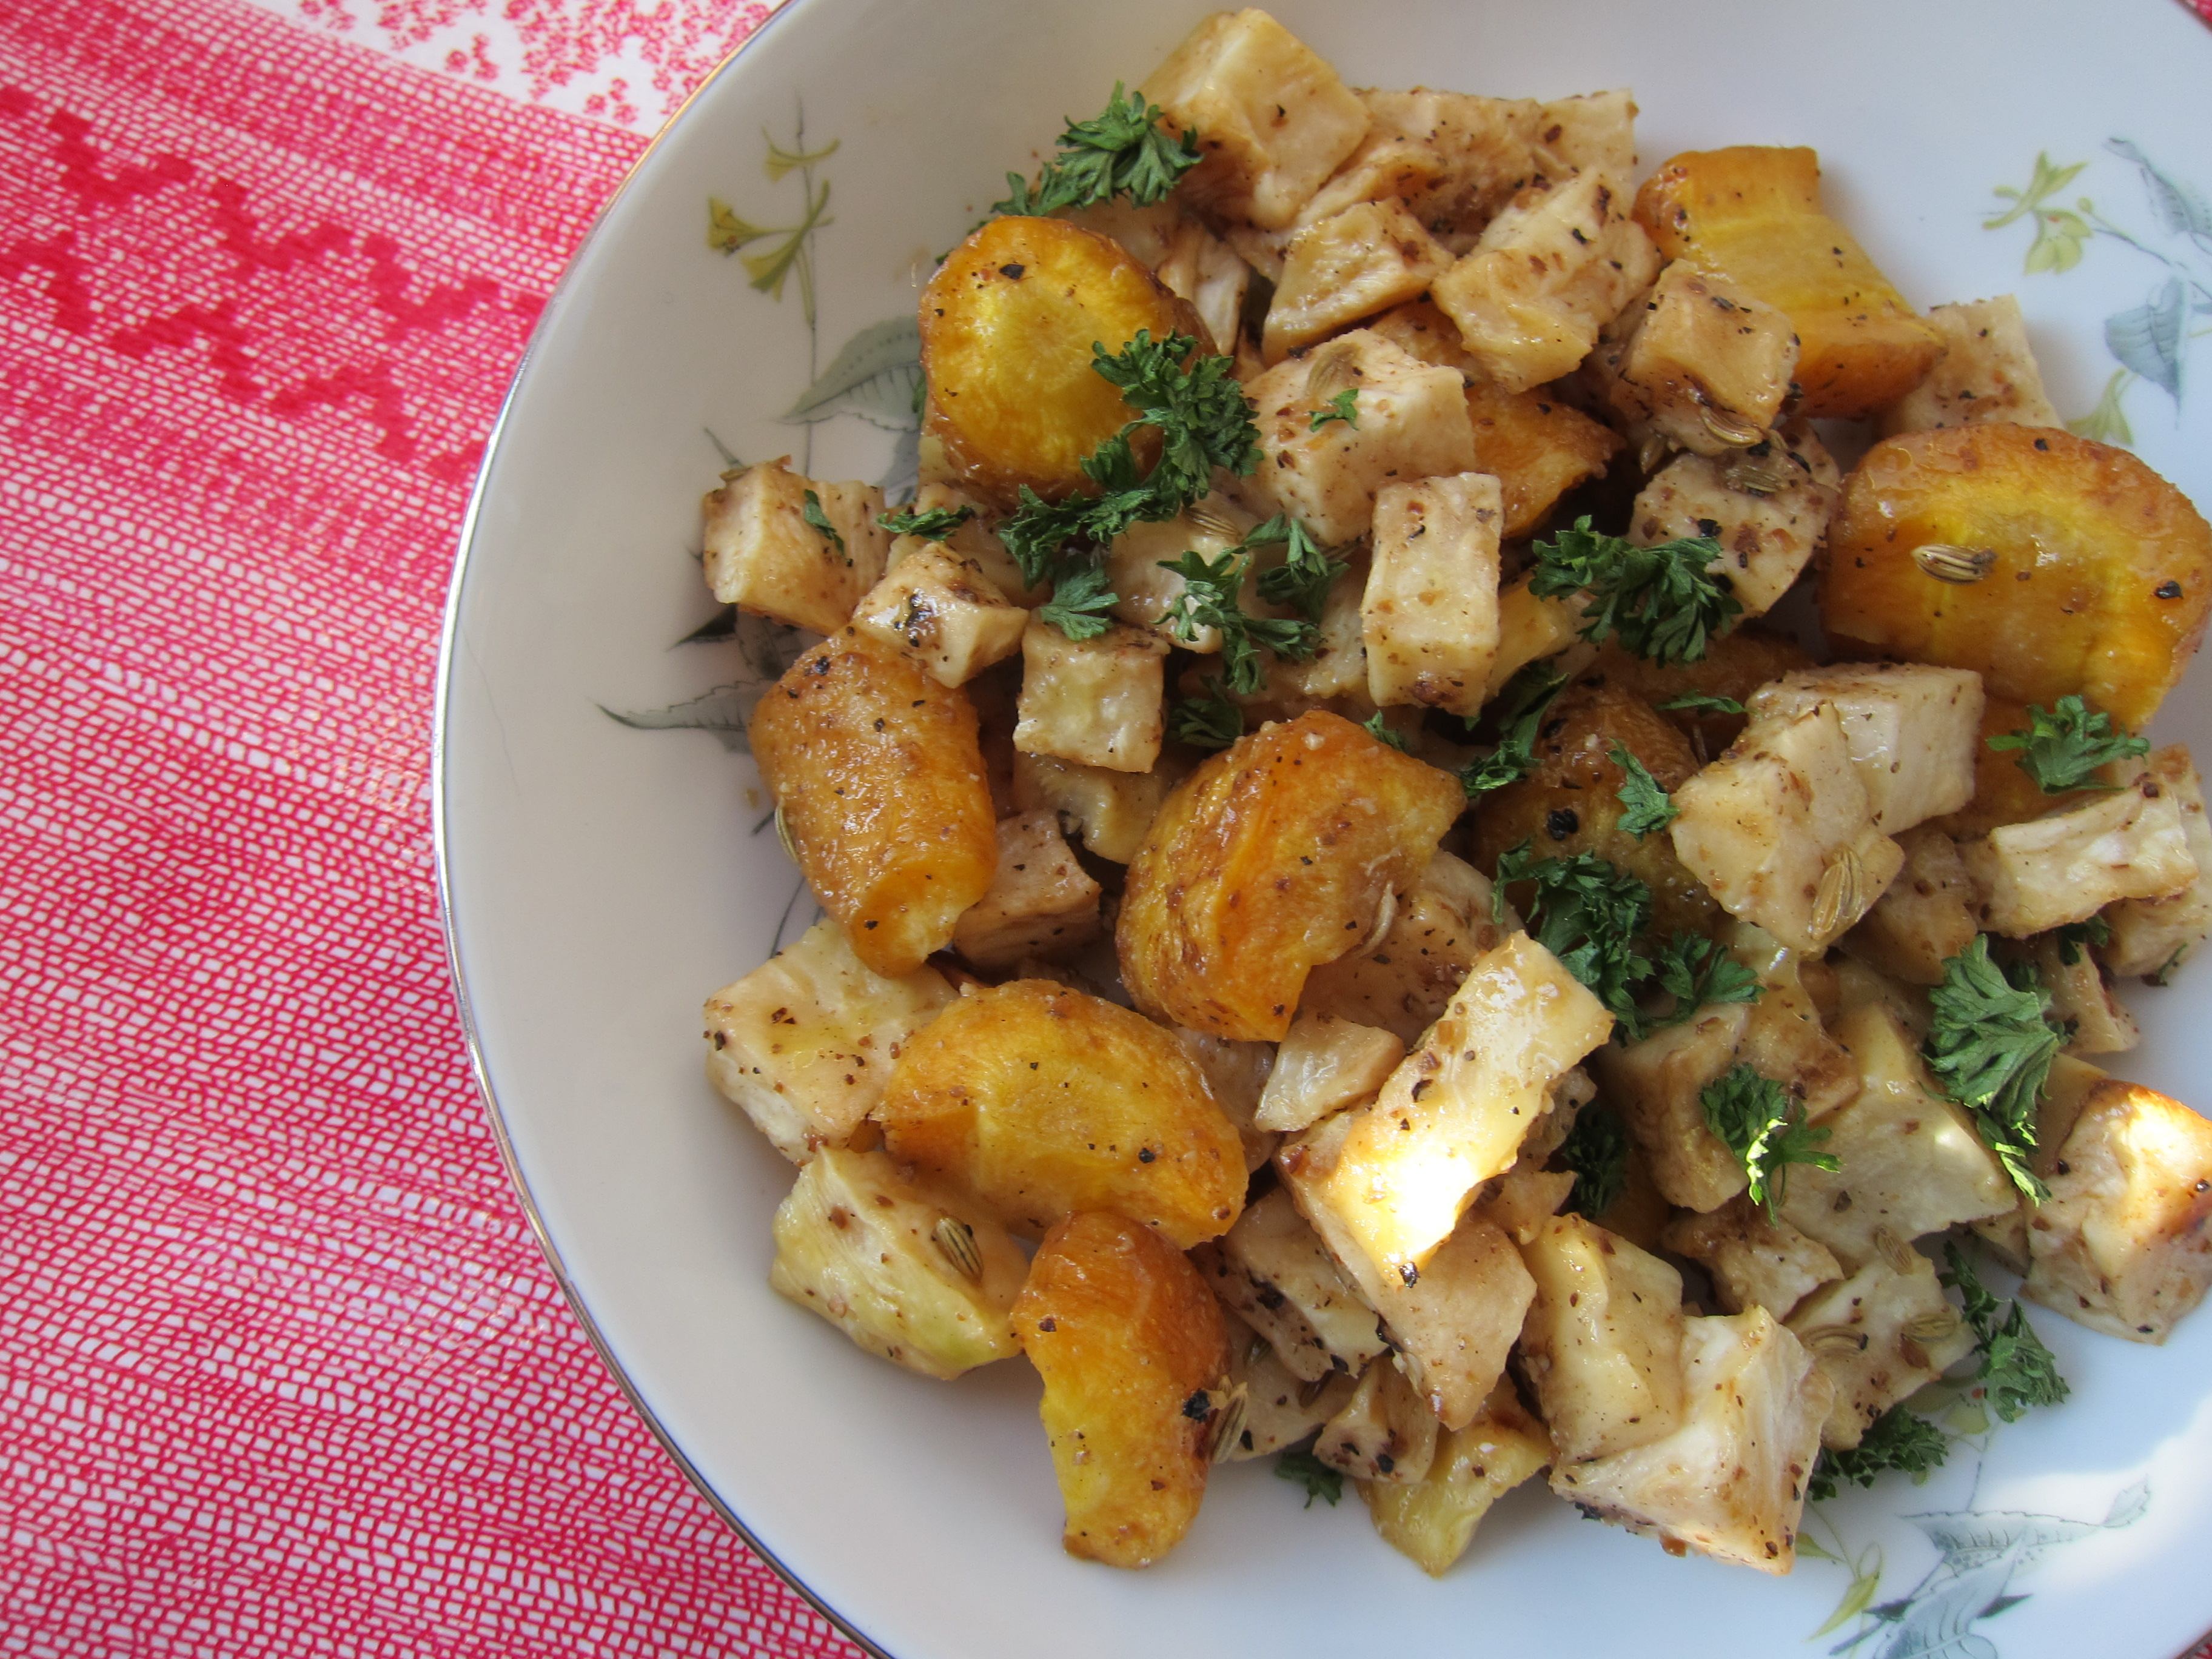 Roasted celery root and sweet carrots makes a perfect winter side dish to roast chicken, delicate white fish, or beef.